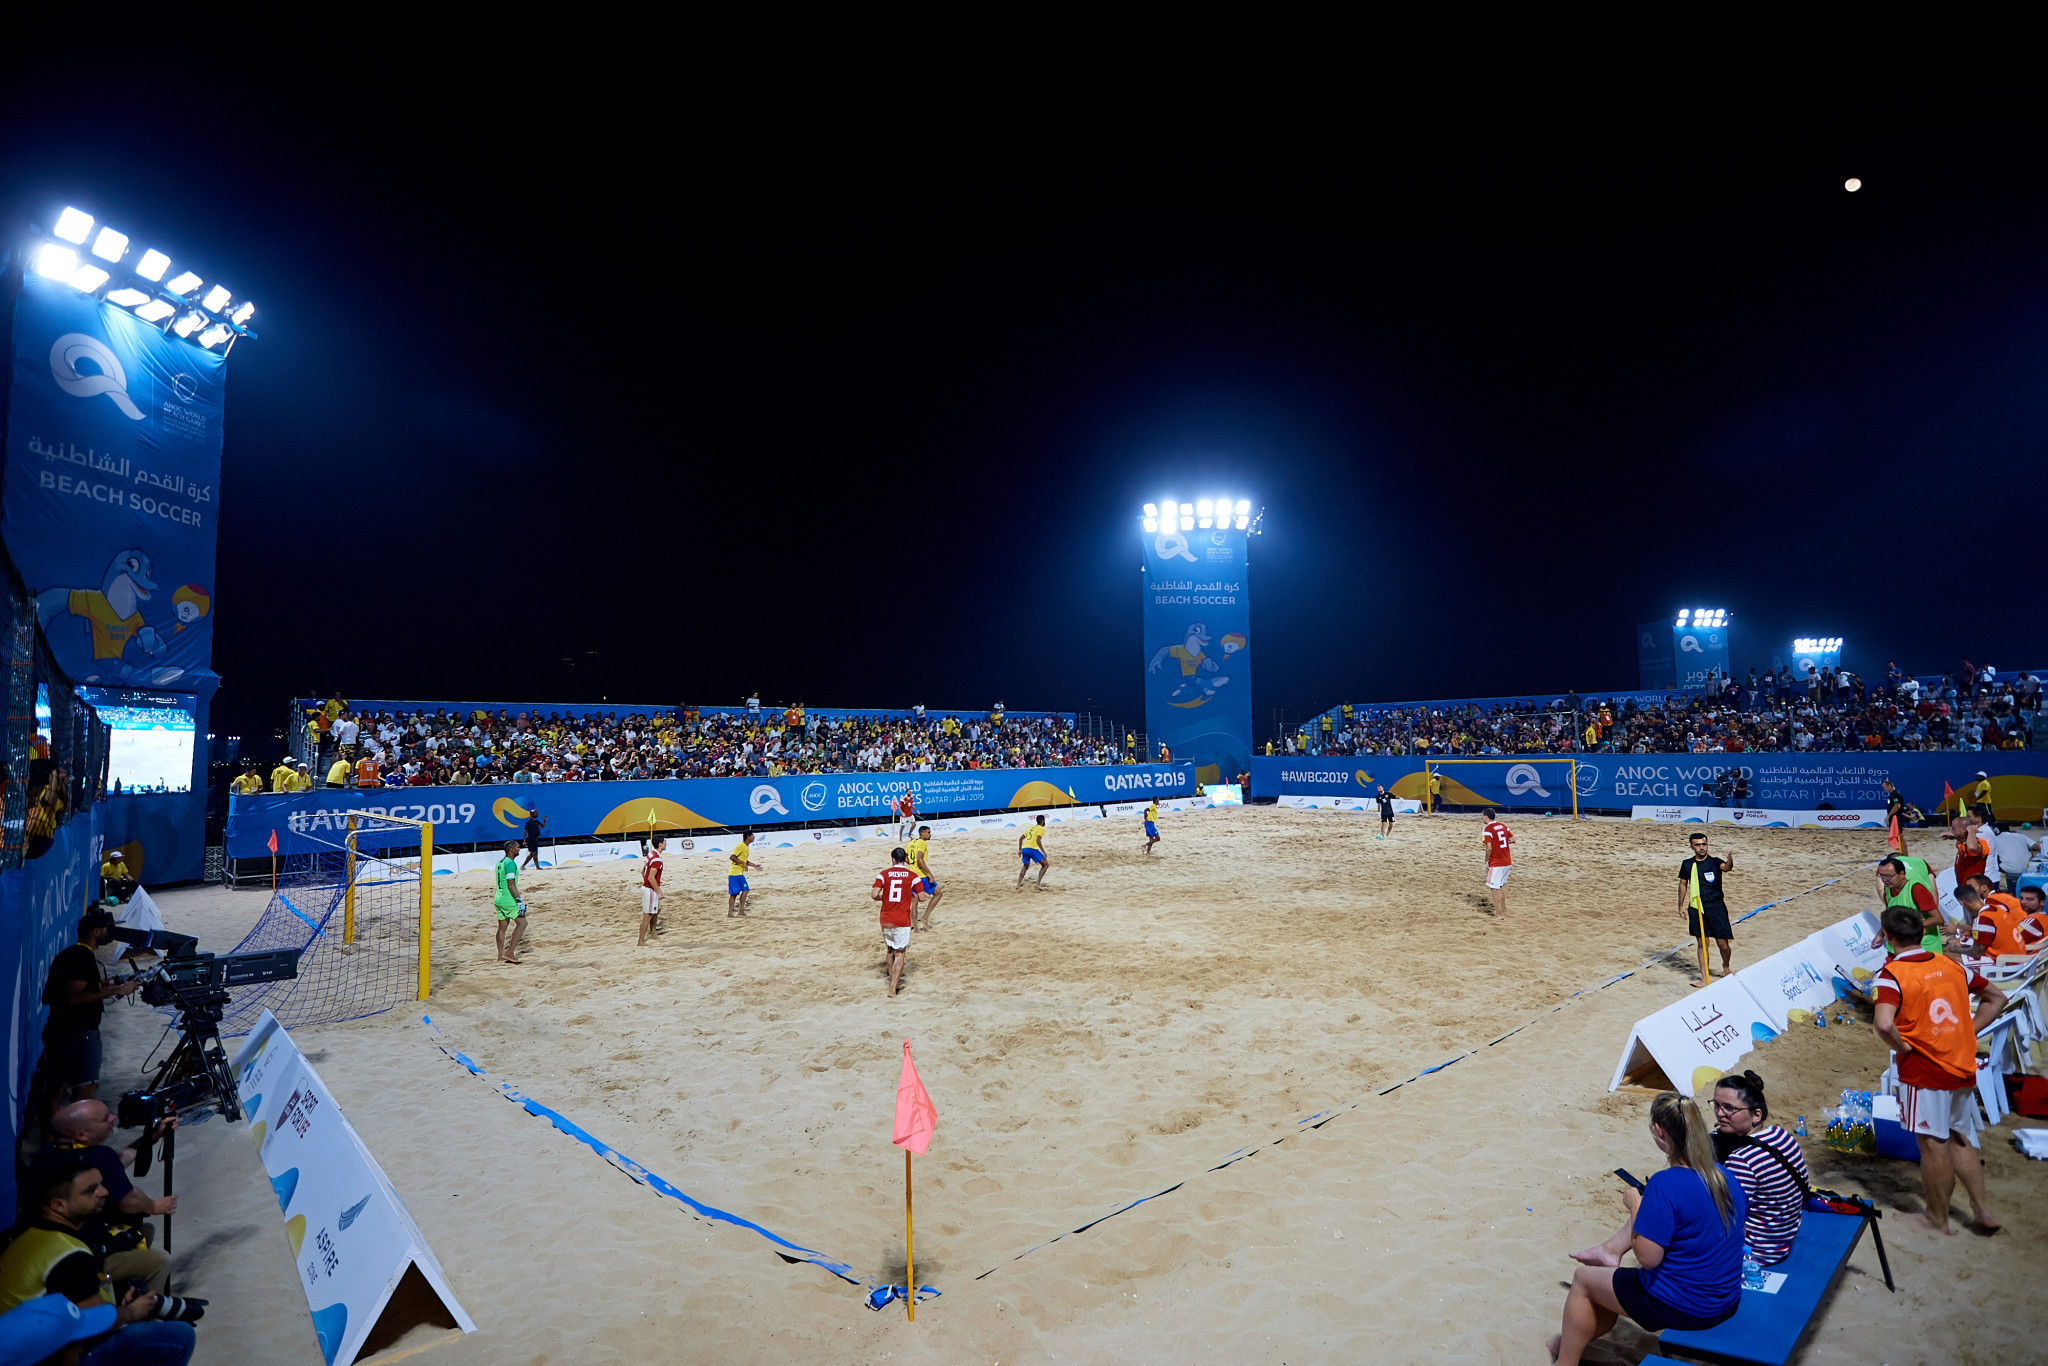 Brazil played samba soccer on the sand to clinch ANOC World Beach Games gold ©ANOC World Beach Games